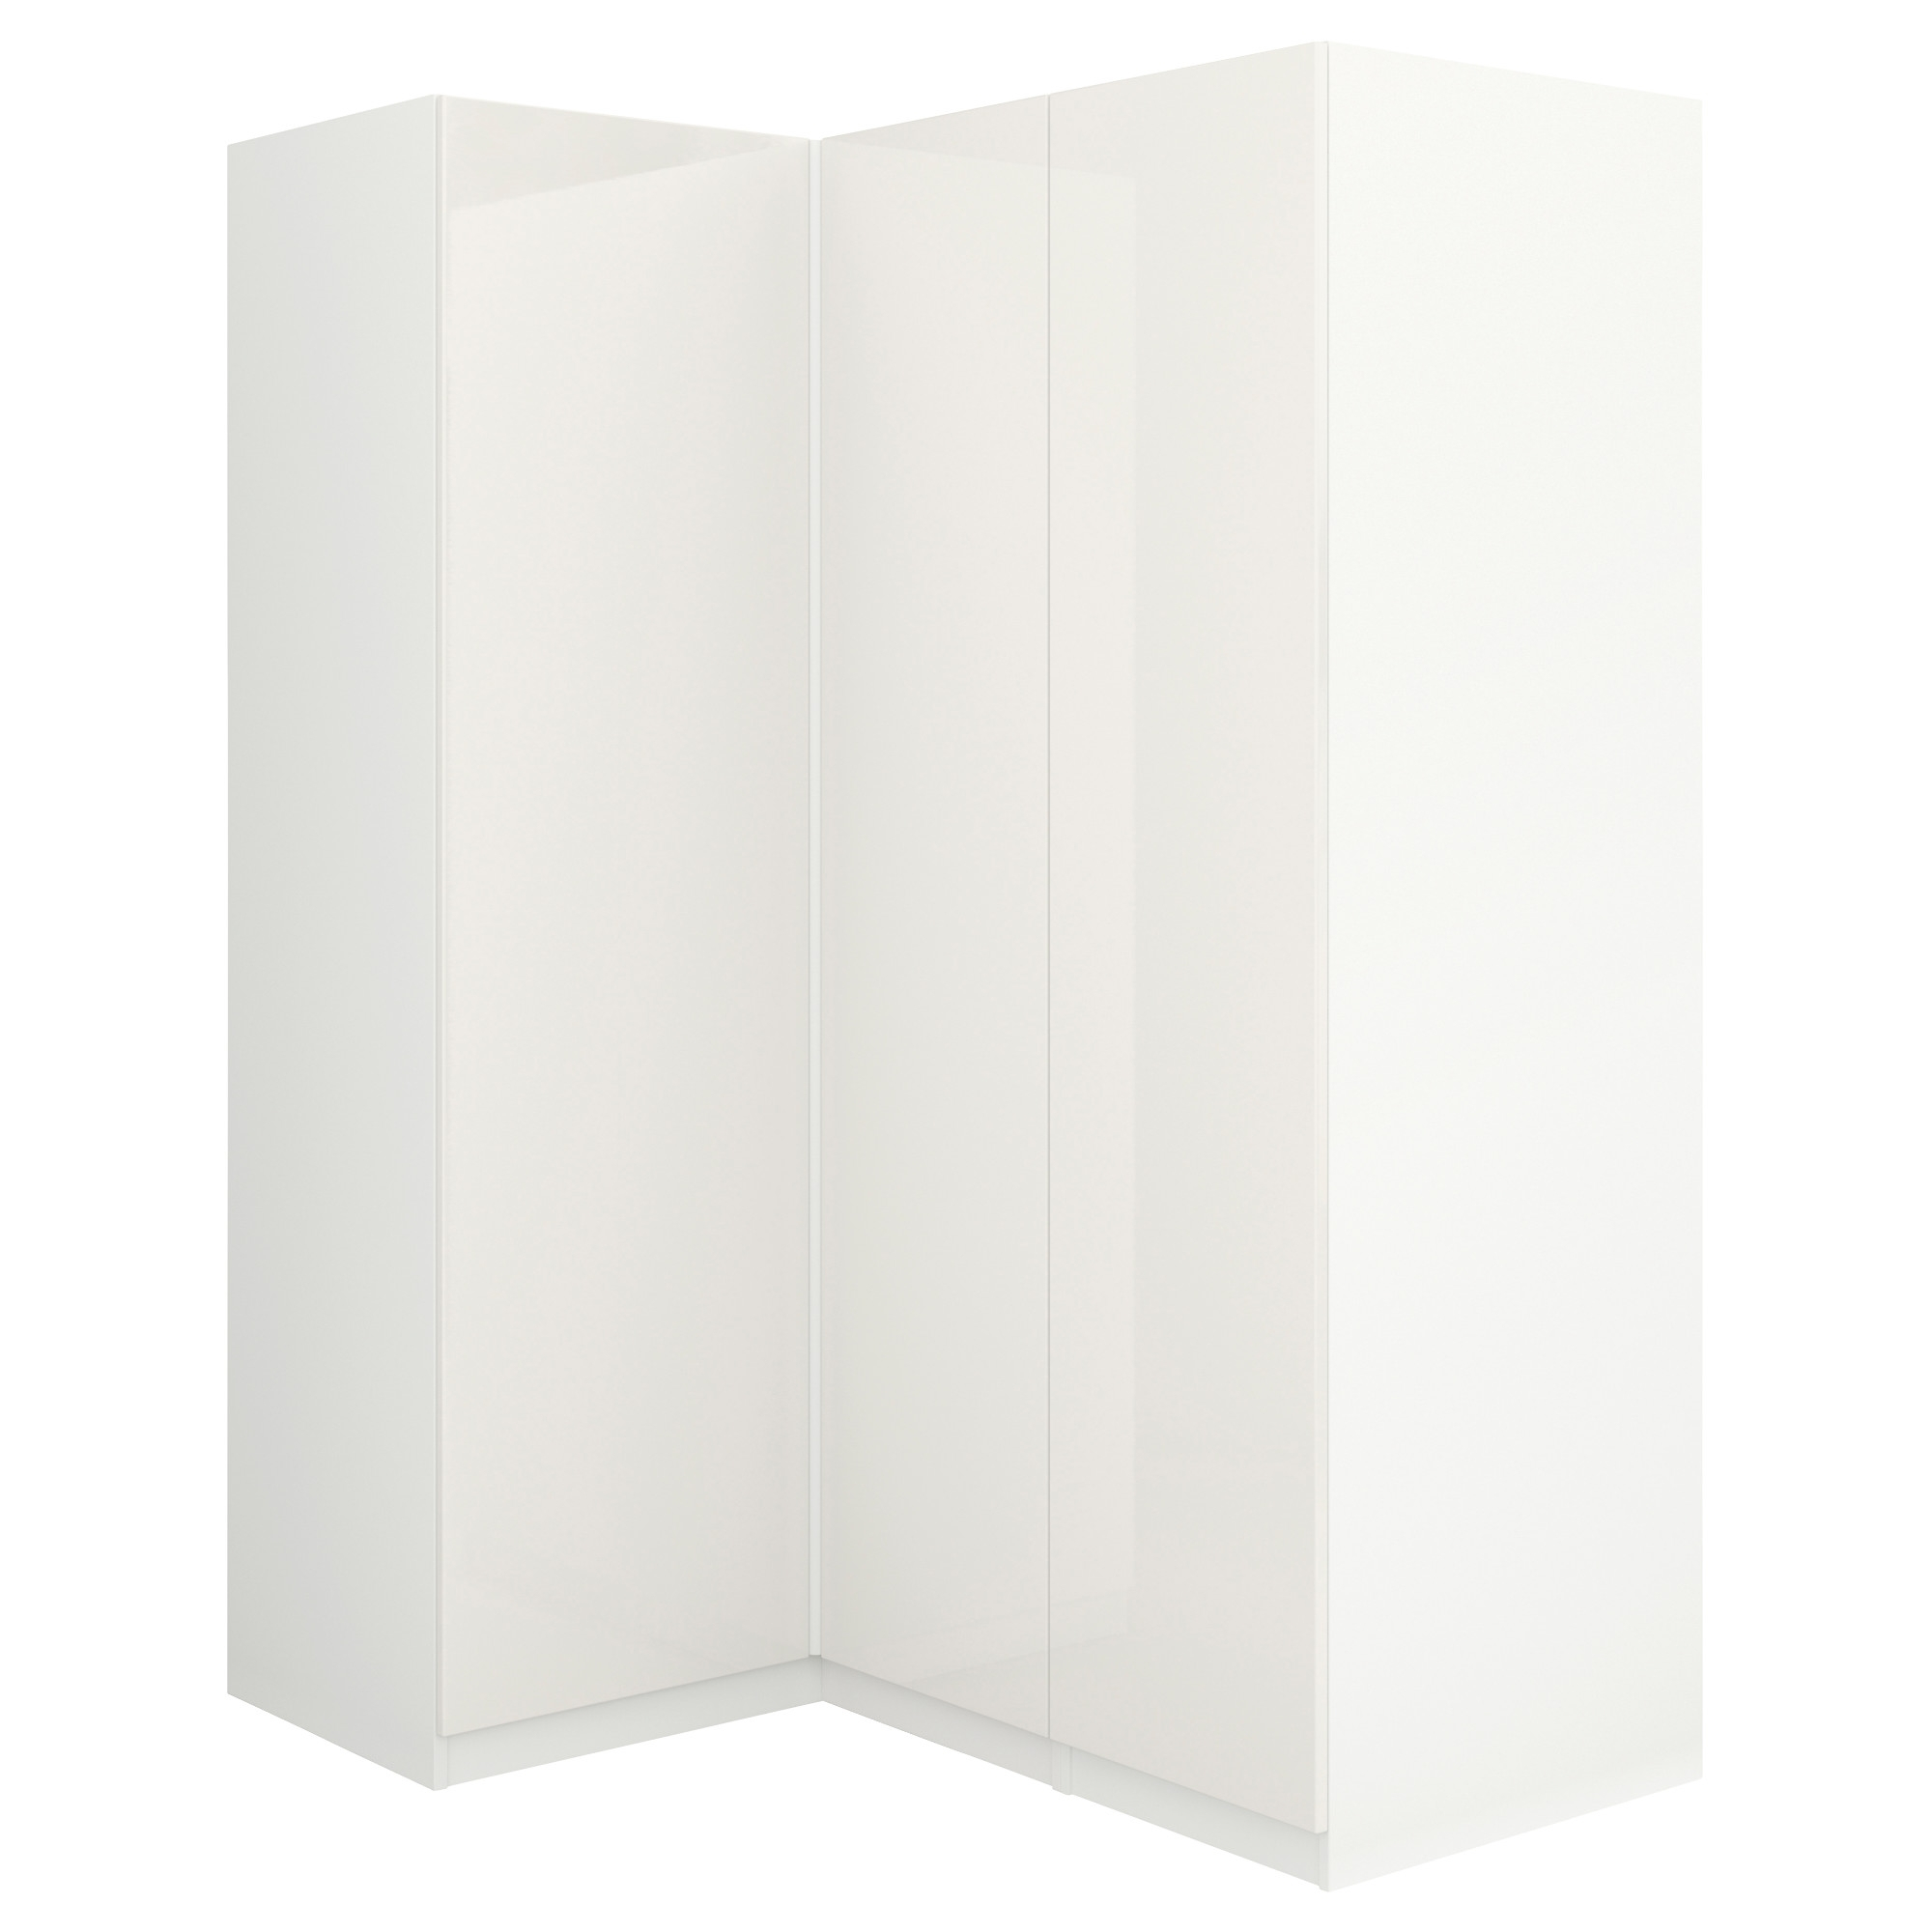 Well Known Pax Corner Wardrobe White/fardal High Gloss/white 160/111X201 Cm Throughout White Gloss Corner Wardrobes (View 9 of 15)